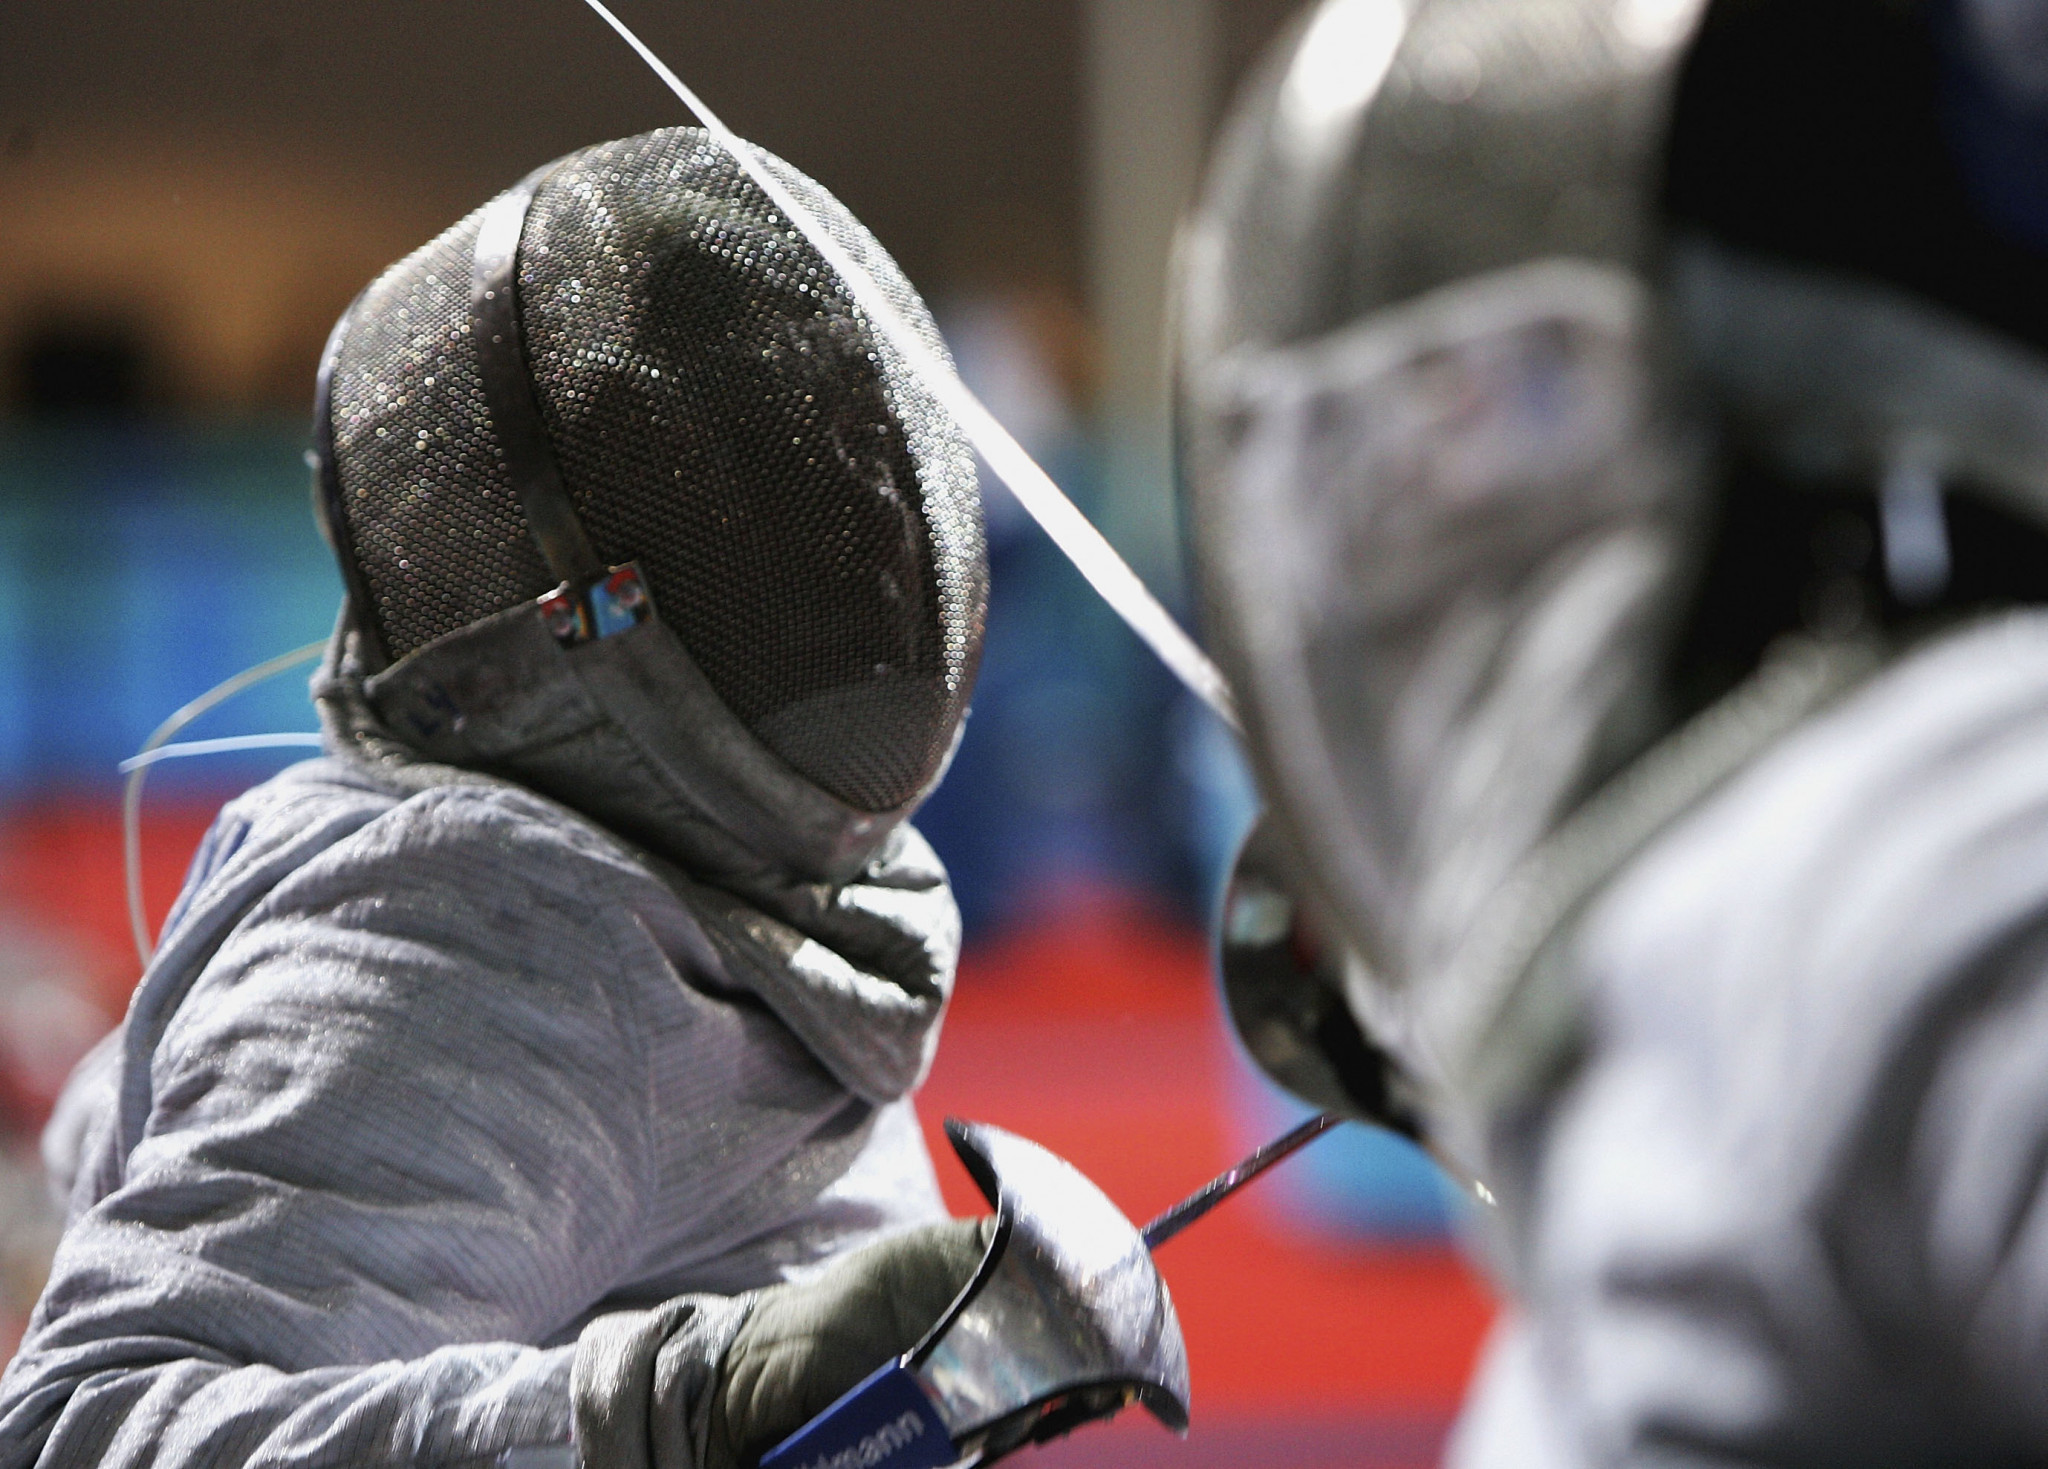 Team sabre world champions return to action in Warsaw for IWAS Wheelchair Fencing World Cup